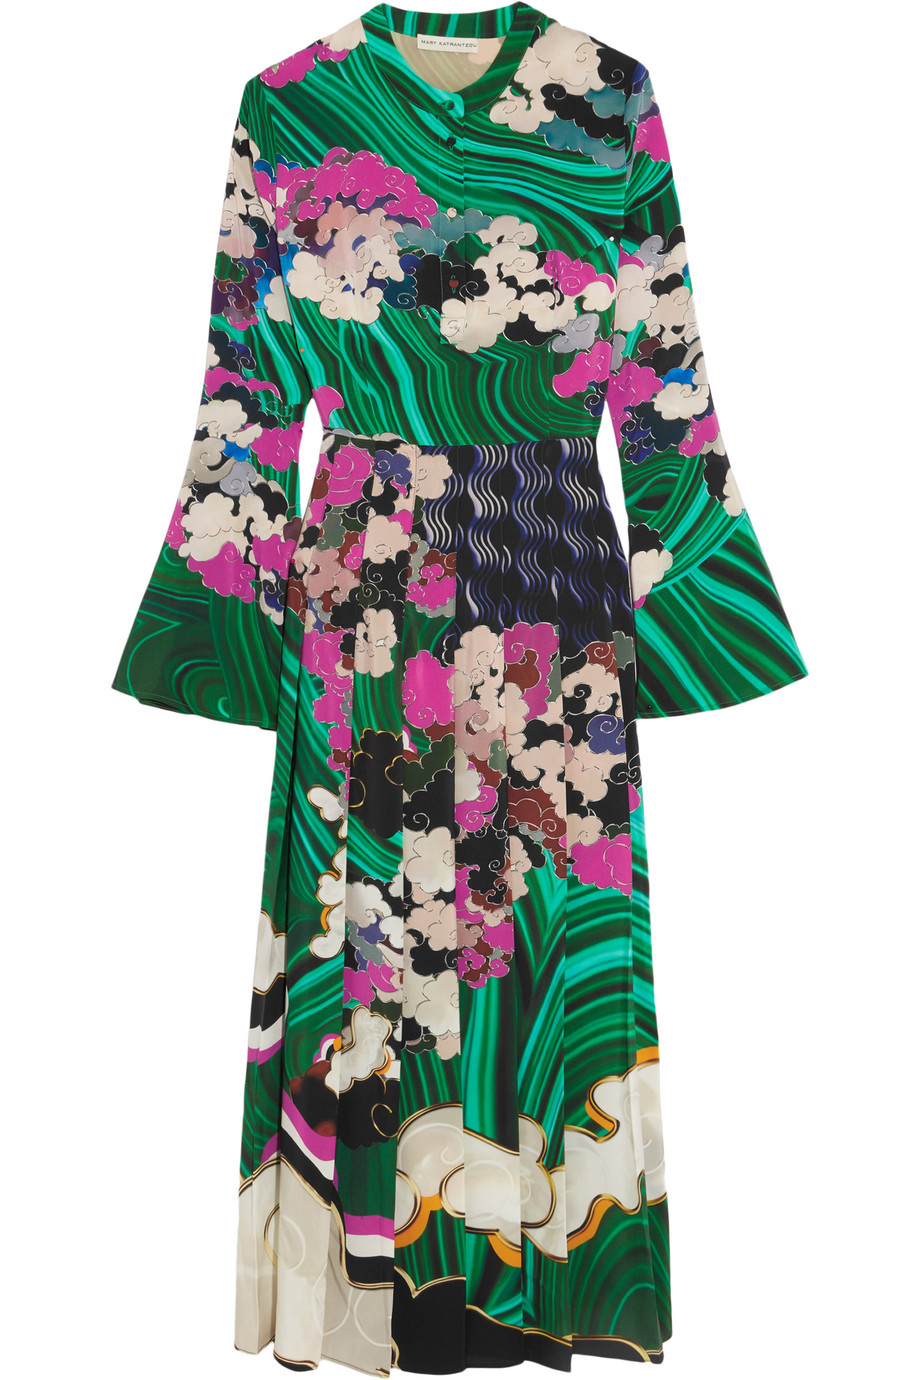 Mary Katrantzou Desmine Printed Silk Dress, Green, Women's - Printed, Size: 12